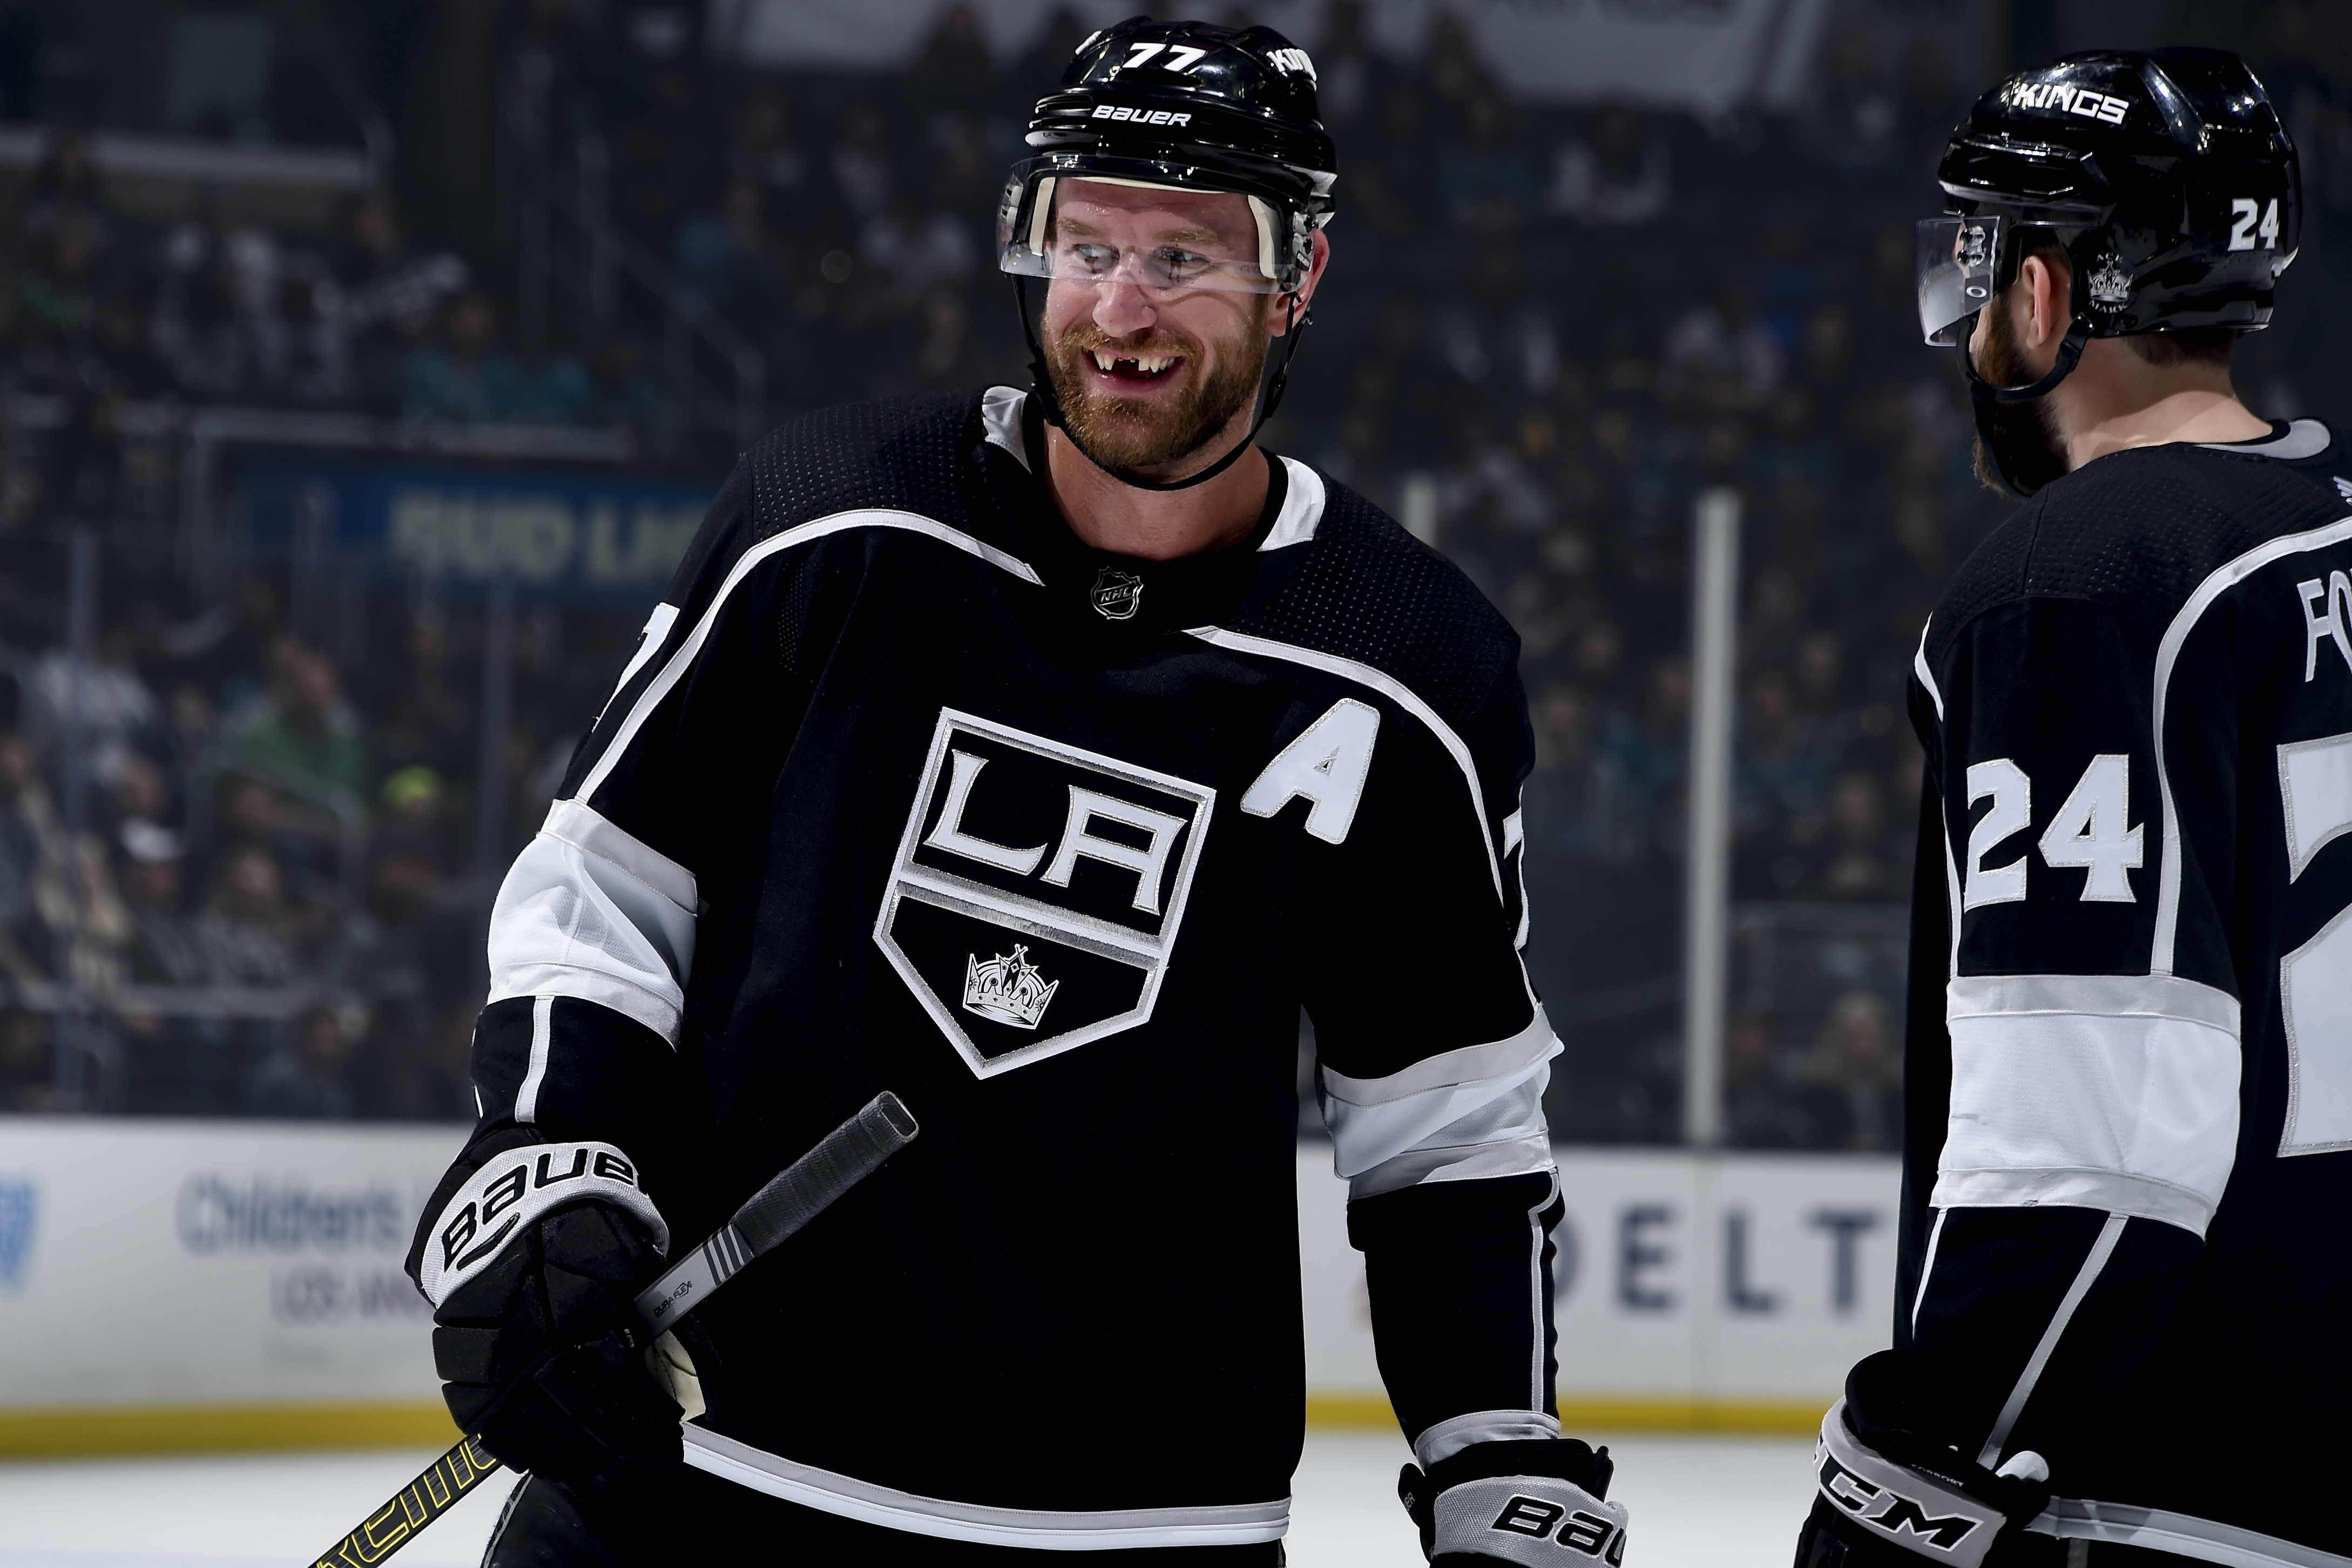 Jeff Carter #77 of the Los Angeles Kings smiles while waiting for play to resume during the first period of the game against the San Jose Sharks at STAPLES Center on March 21, 2019 in Los Angeles, California.